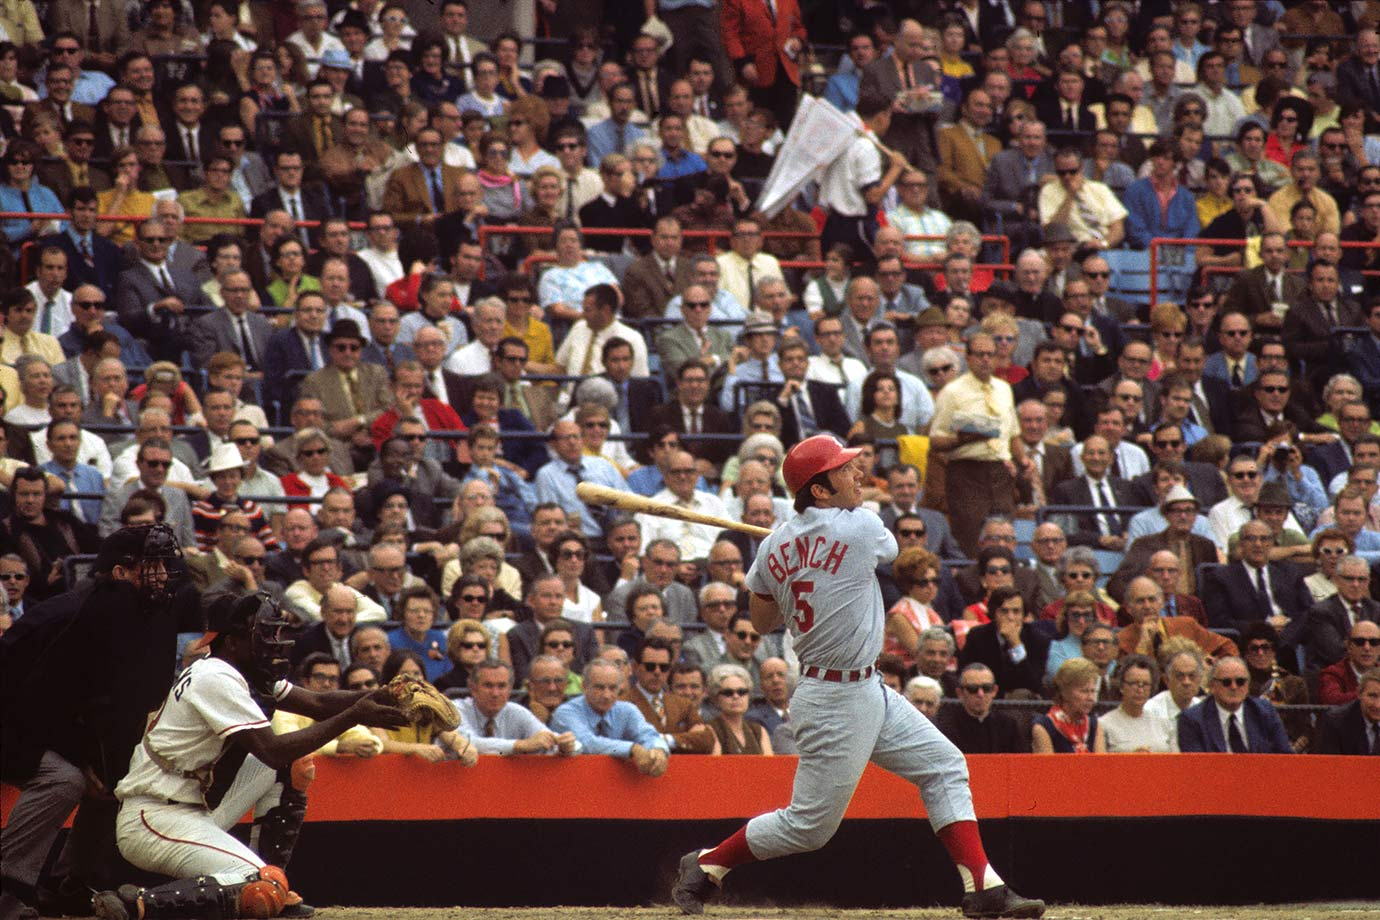 Oct. 13, 1970 — World Series, Game 3